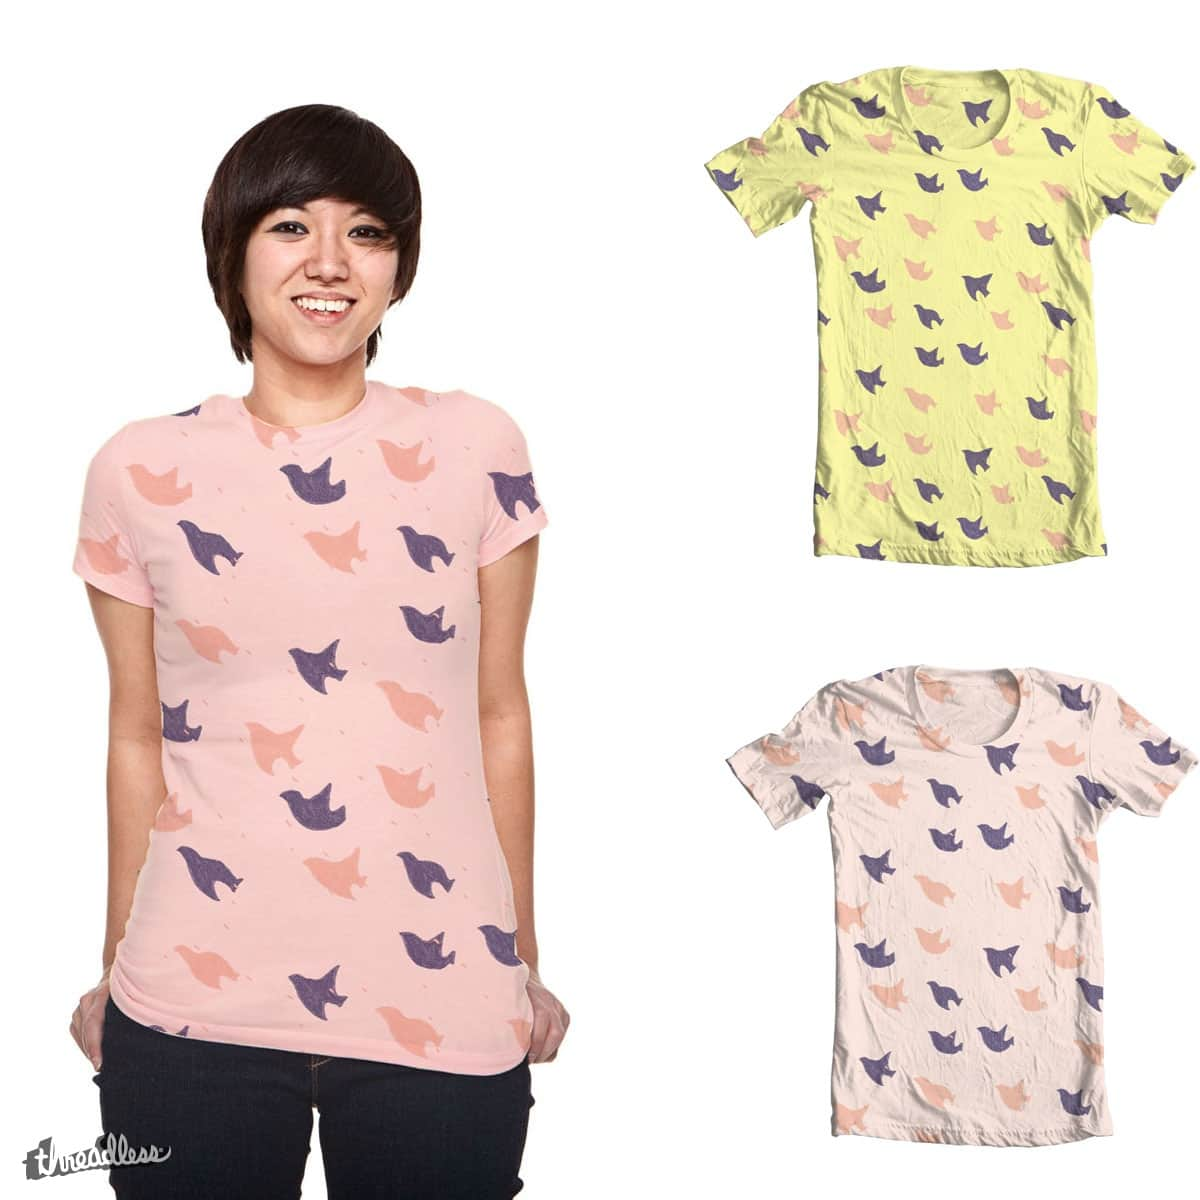 Flying bird pattern by madebymt on Threadless